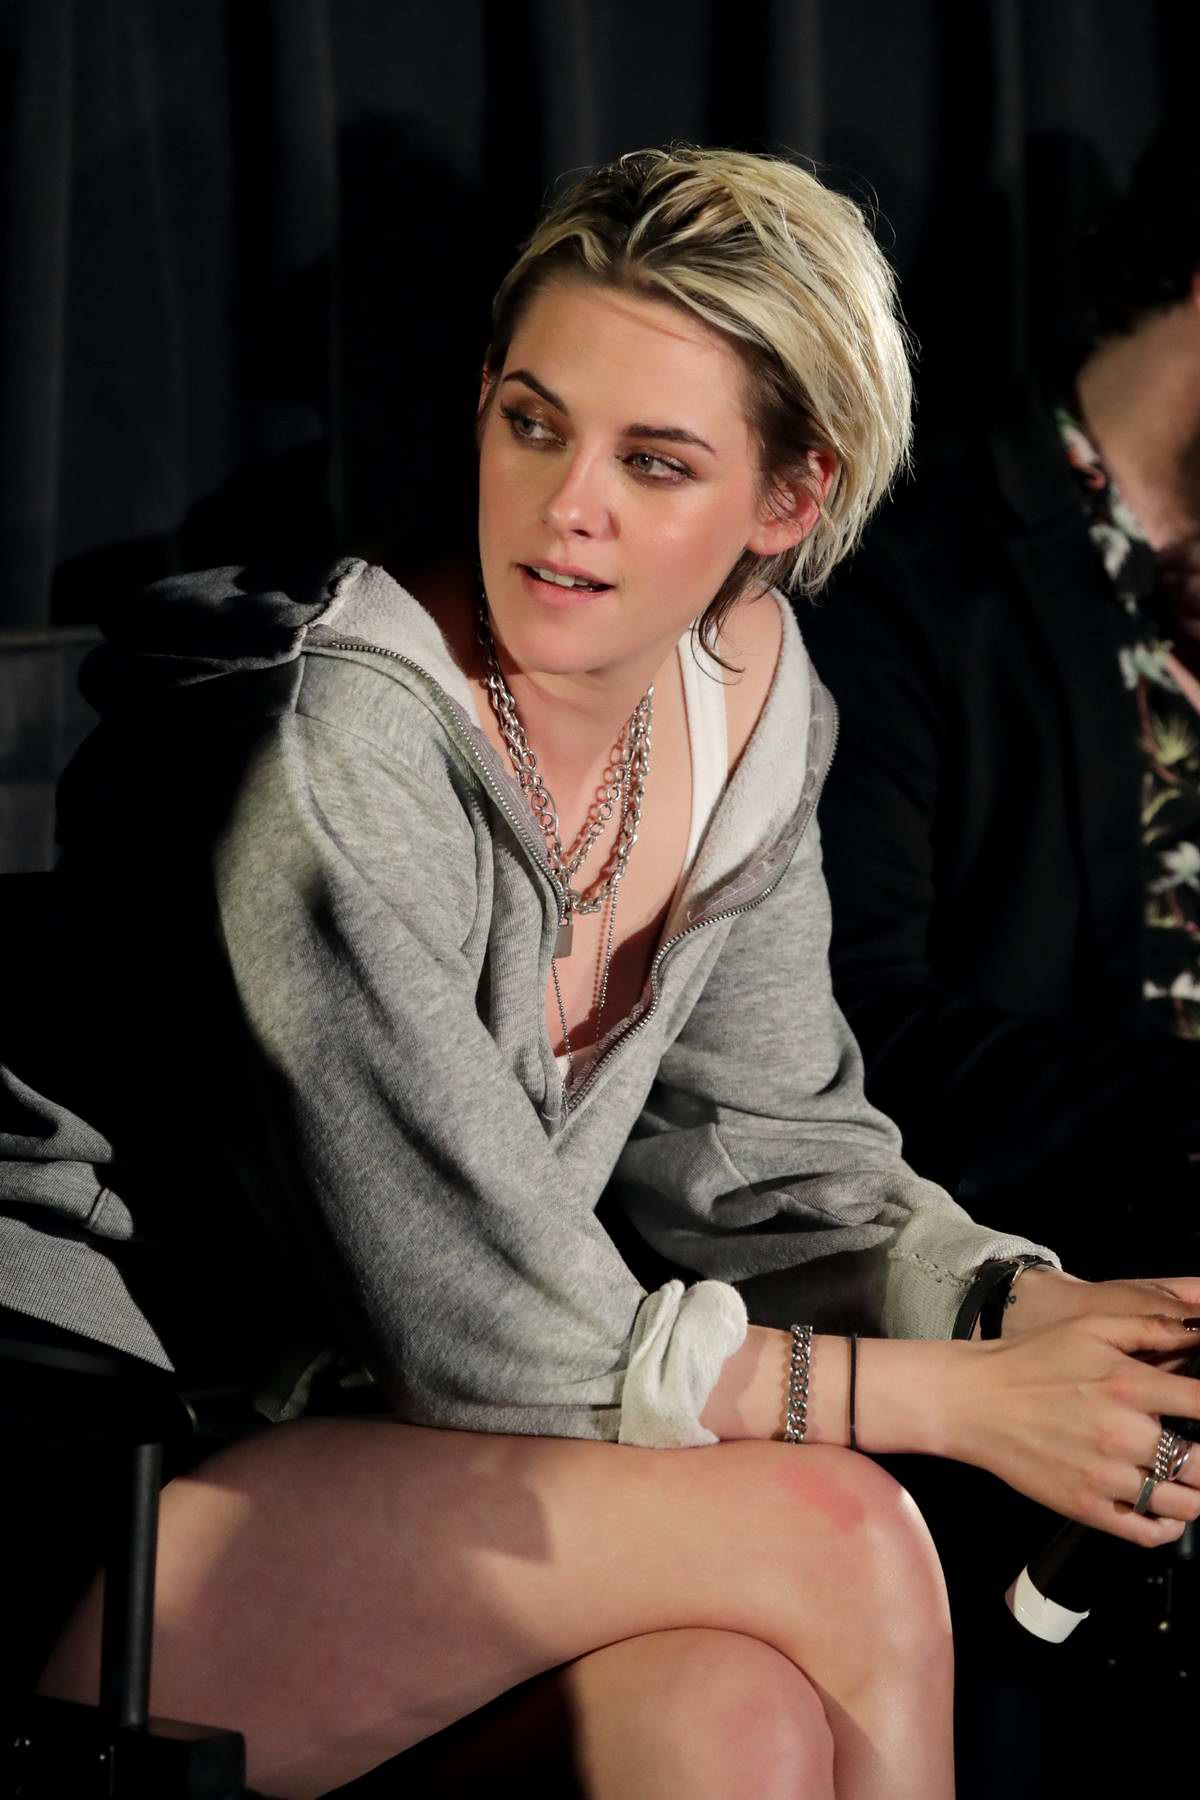 Kristen Stewart attends a Q&A session during the Fan Screening of 'Underwater' in Los Angeles